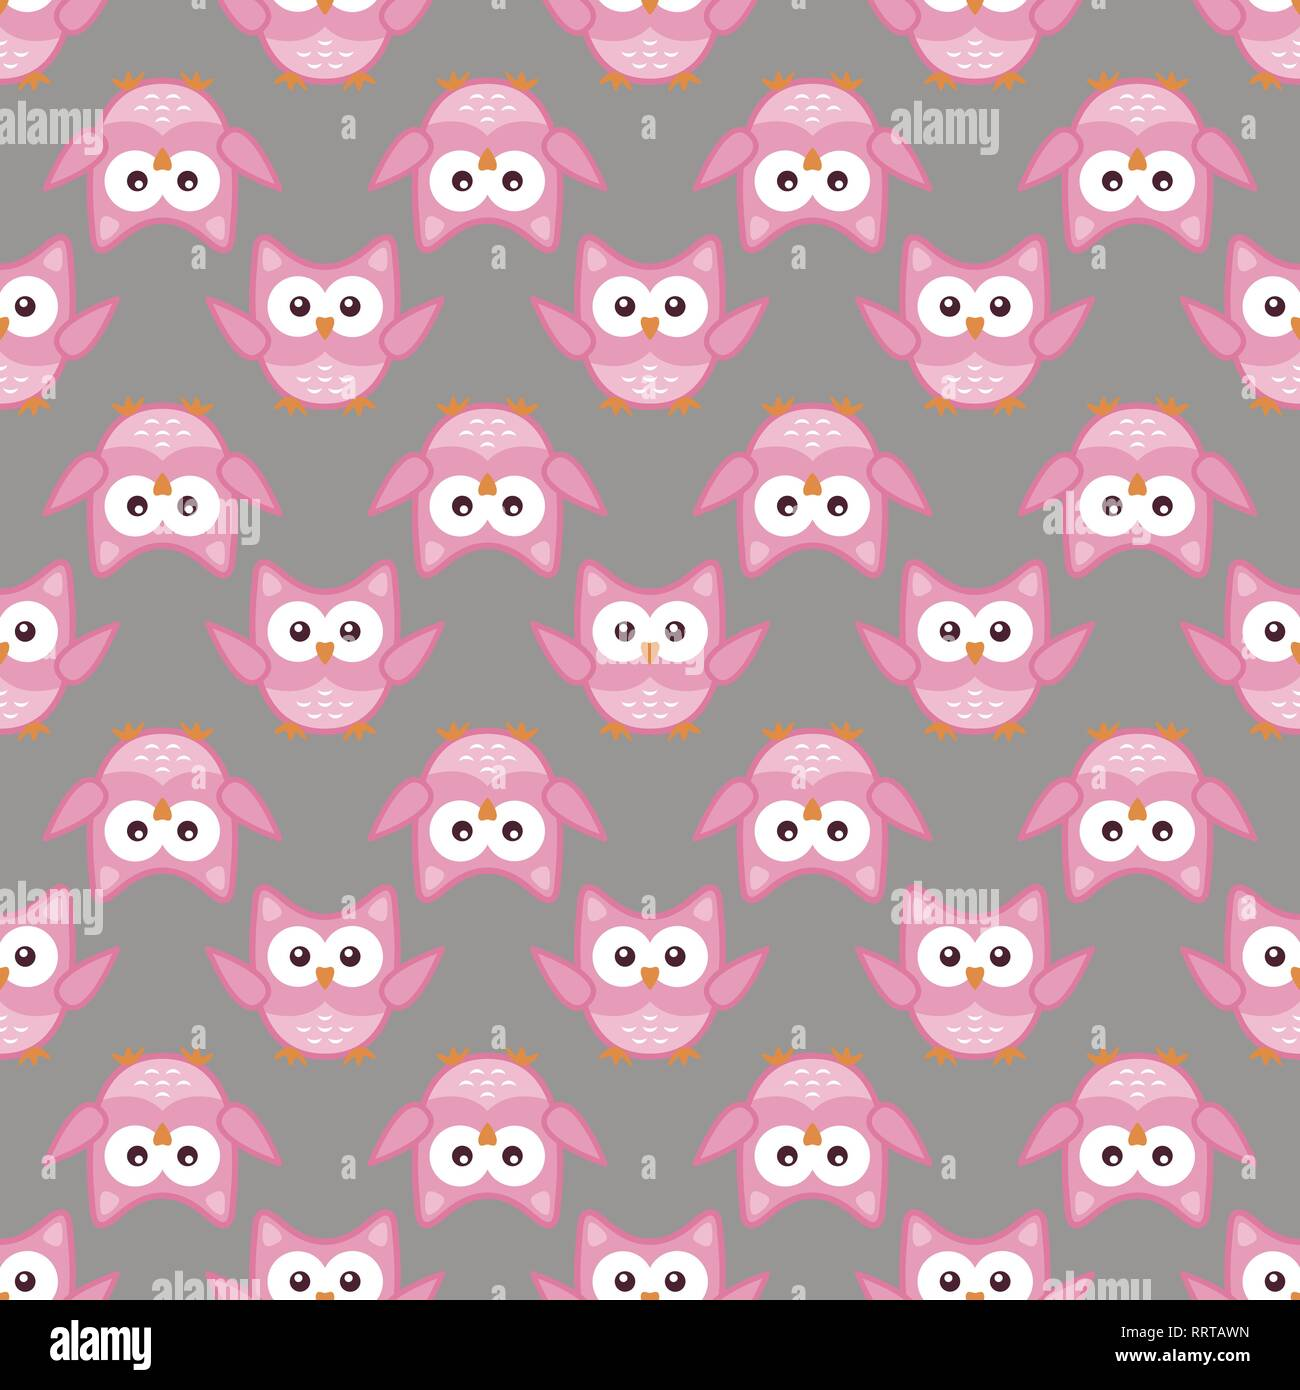 Owl stylized art seemless pattern pink gray colors - Stock Vector